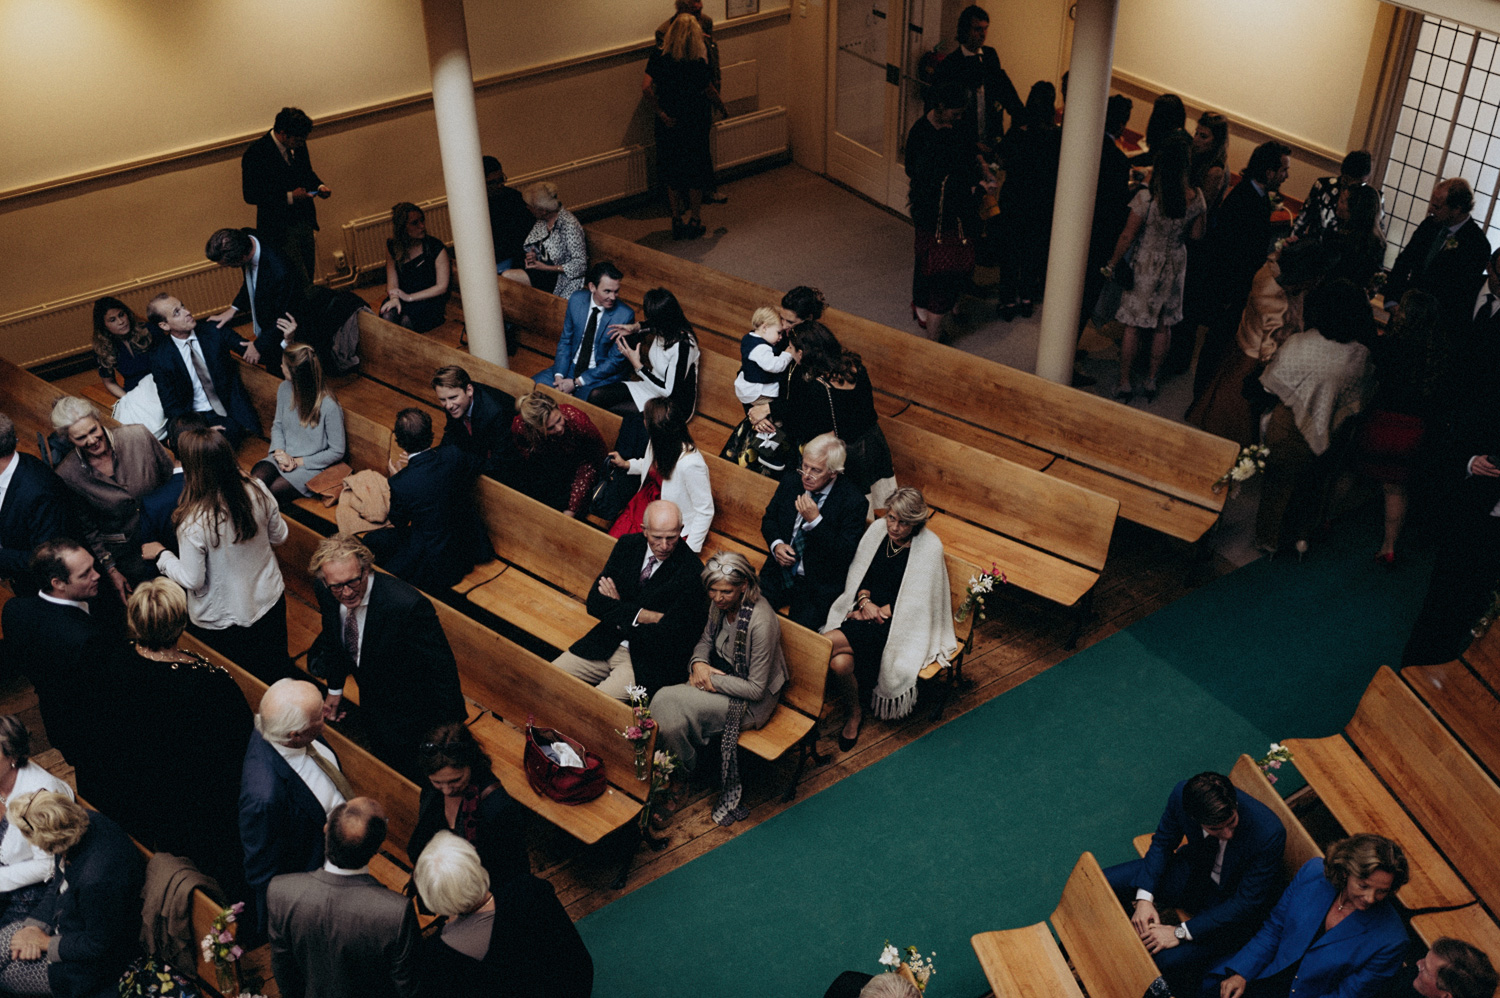 Wedding guests sitting in church benches at Keizersgracht Kerk Amsterdam